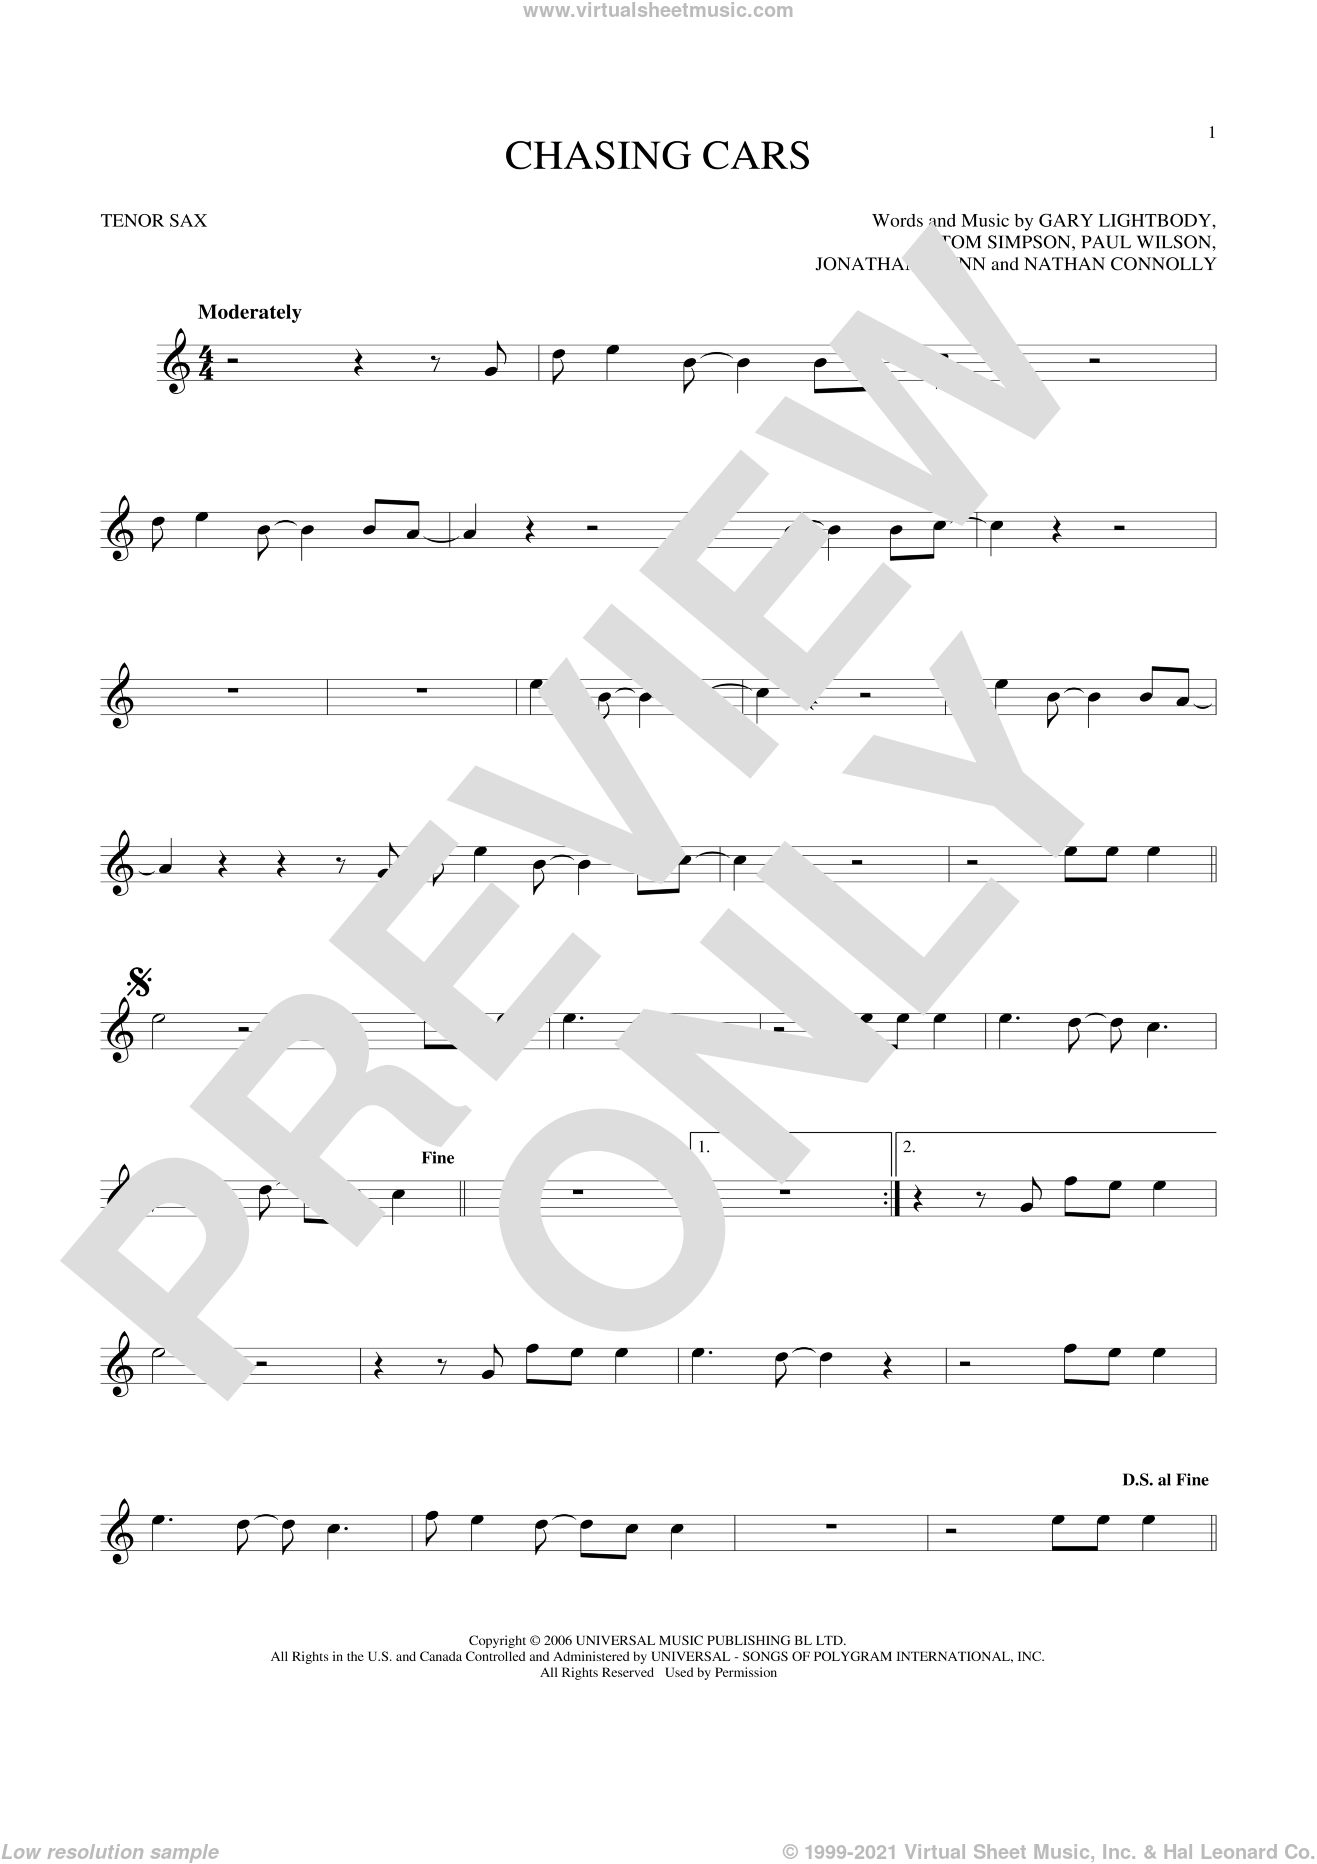 Chasing Cars sheet music for tenor saxophone solo by Snow Patrol, Gary Lightbody, Jonathan Quinn, Nathan Connolly, Paul Wilson and Tom Simpson, intermediate skill level